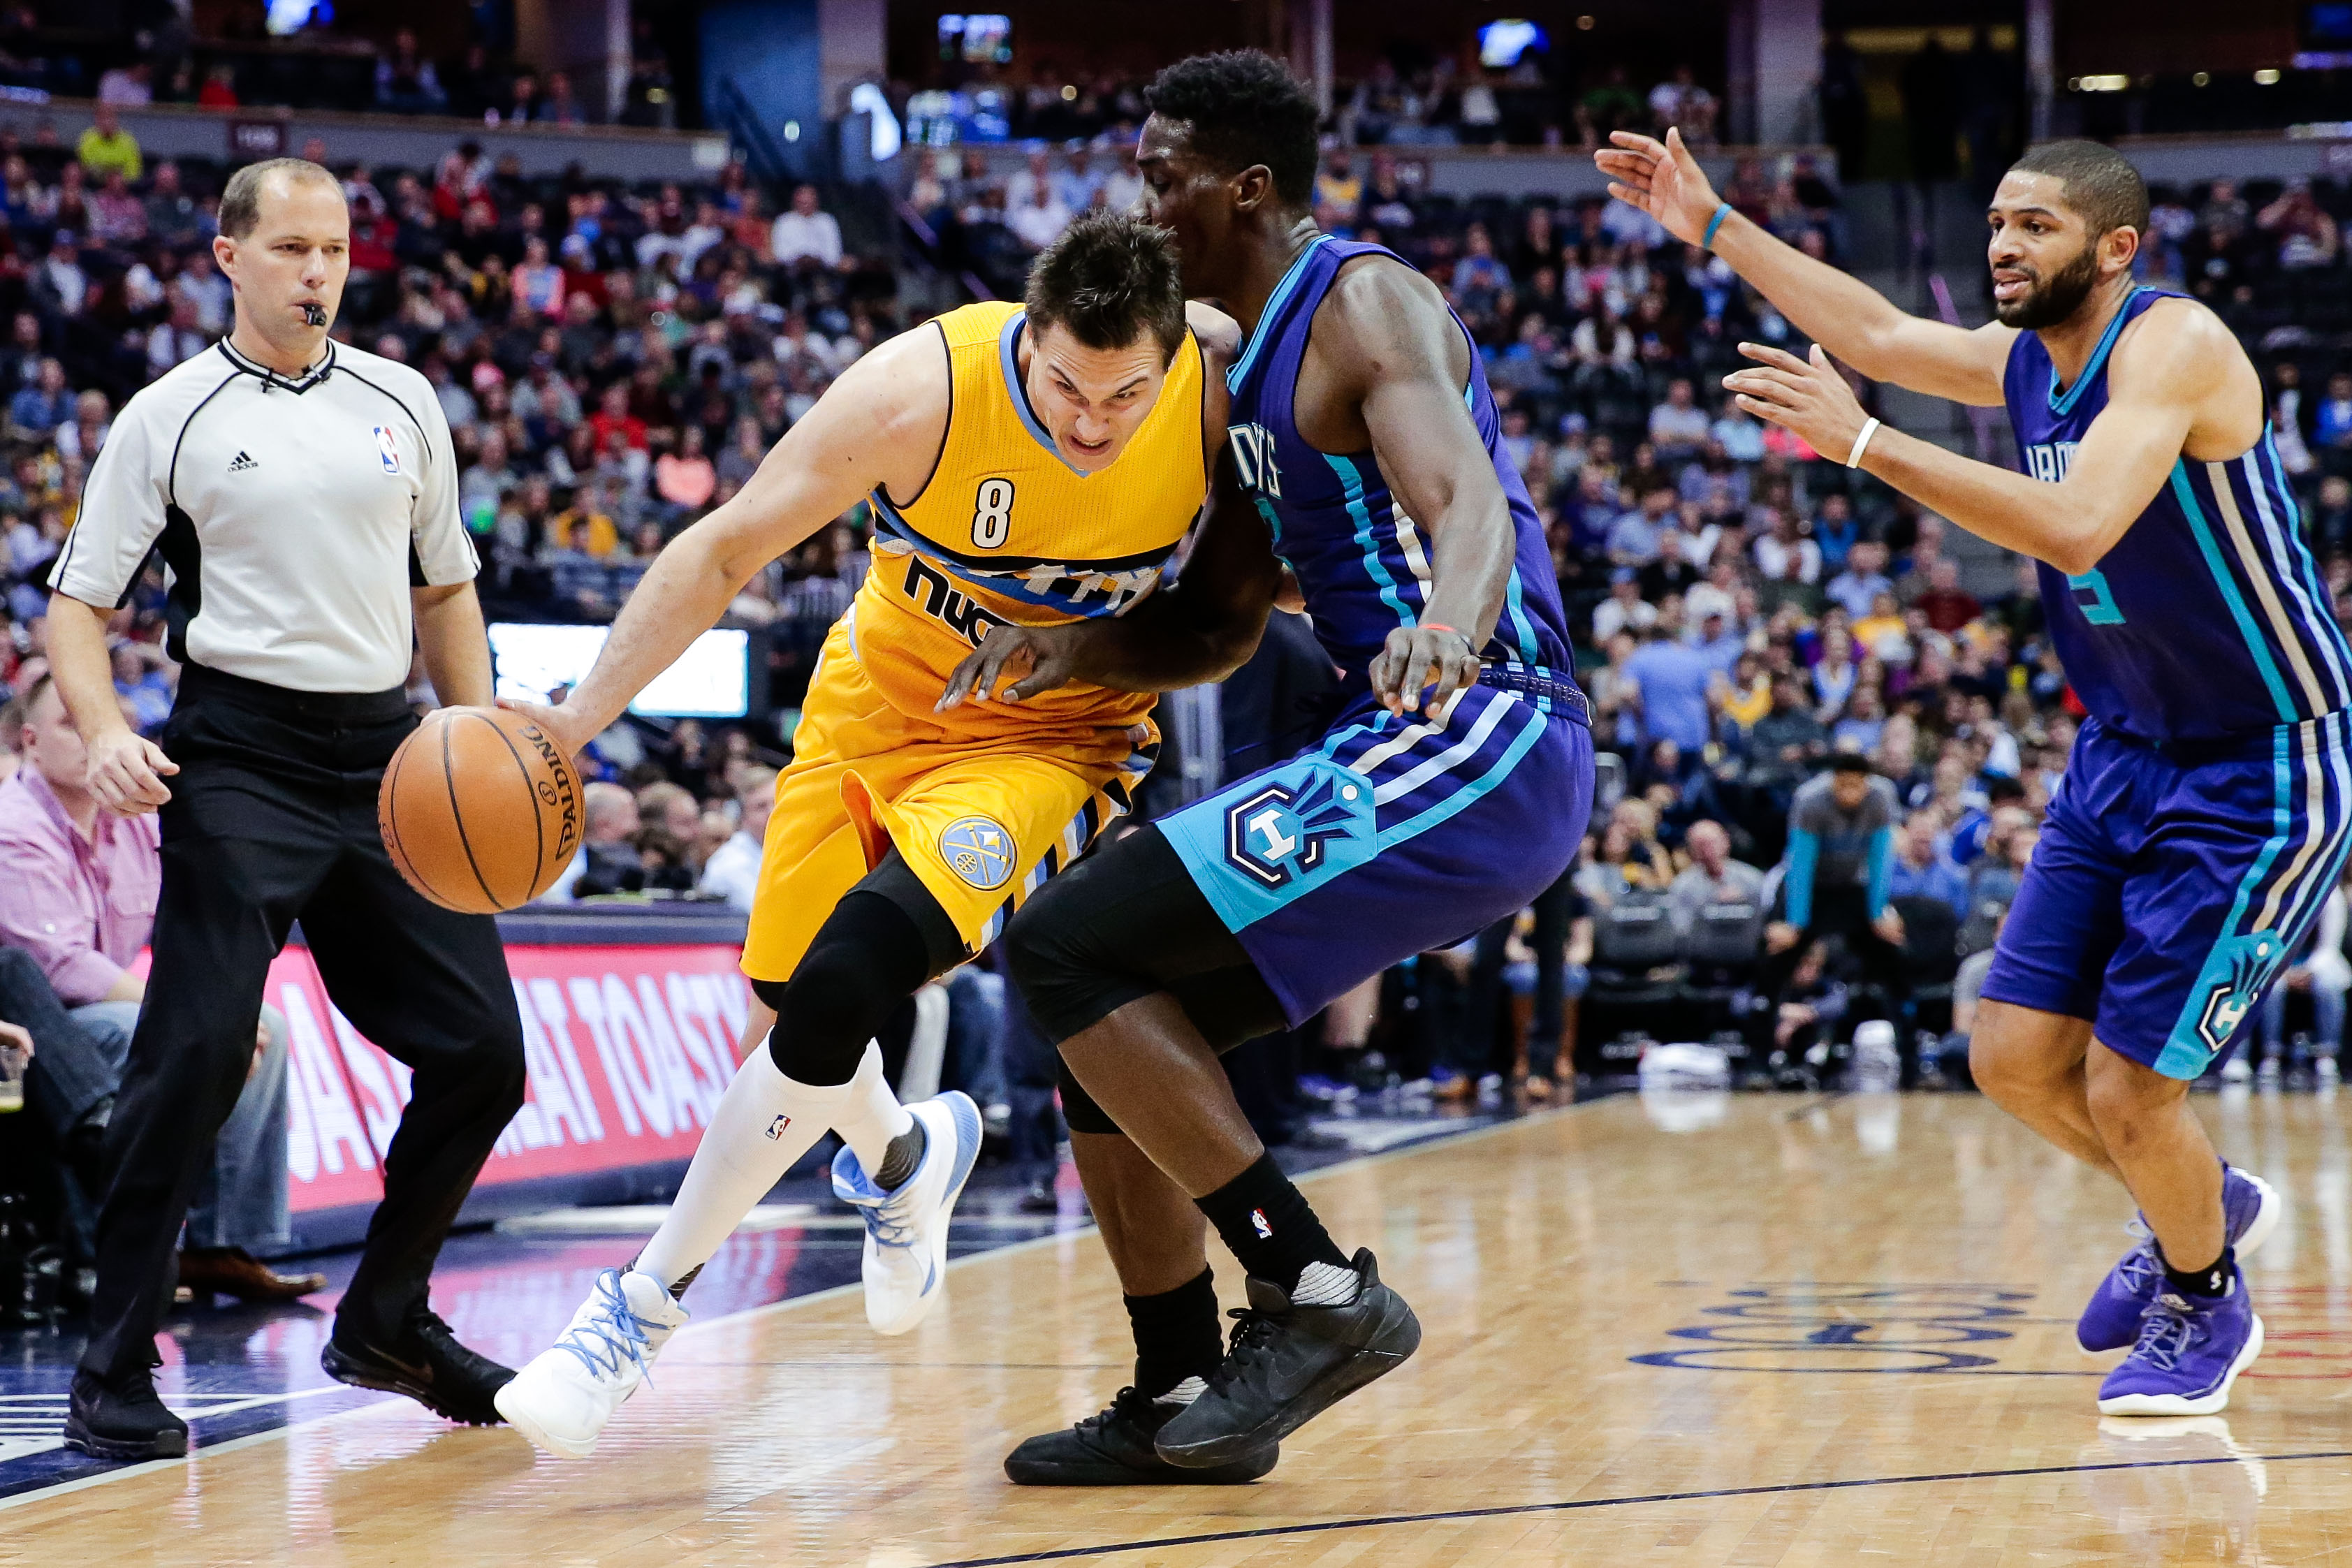 9918174-nba-charlotte-hornets-at-denver-nuggets